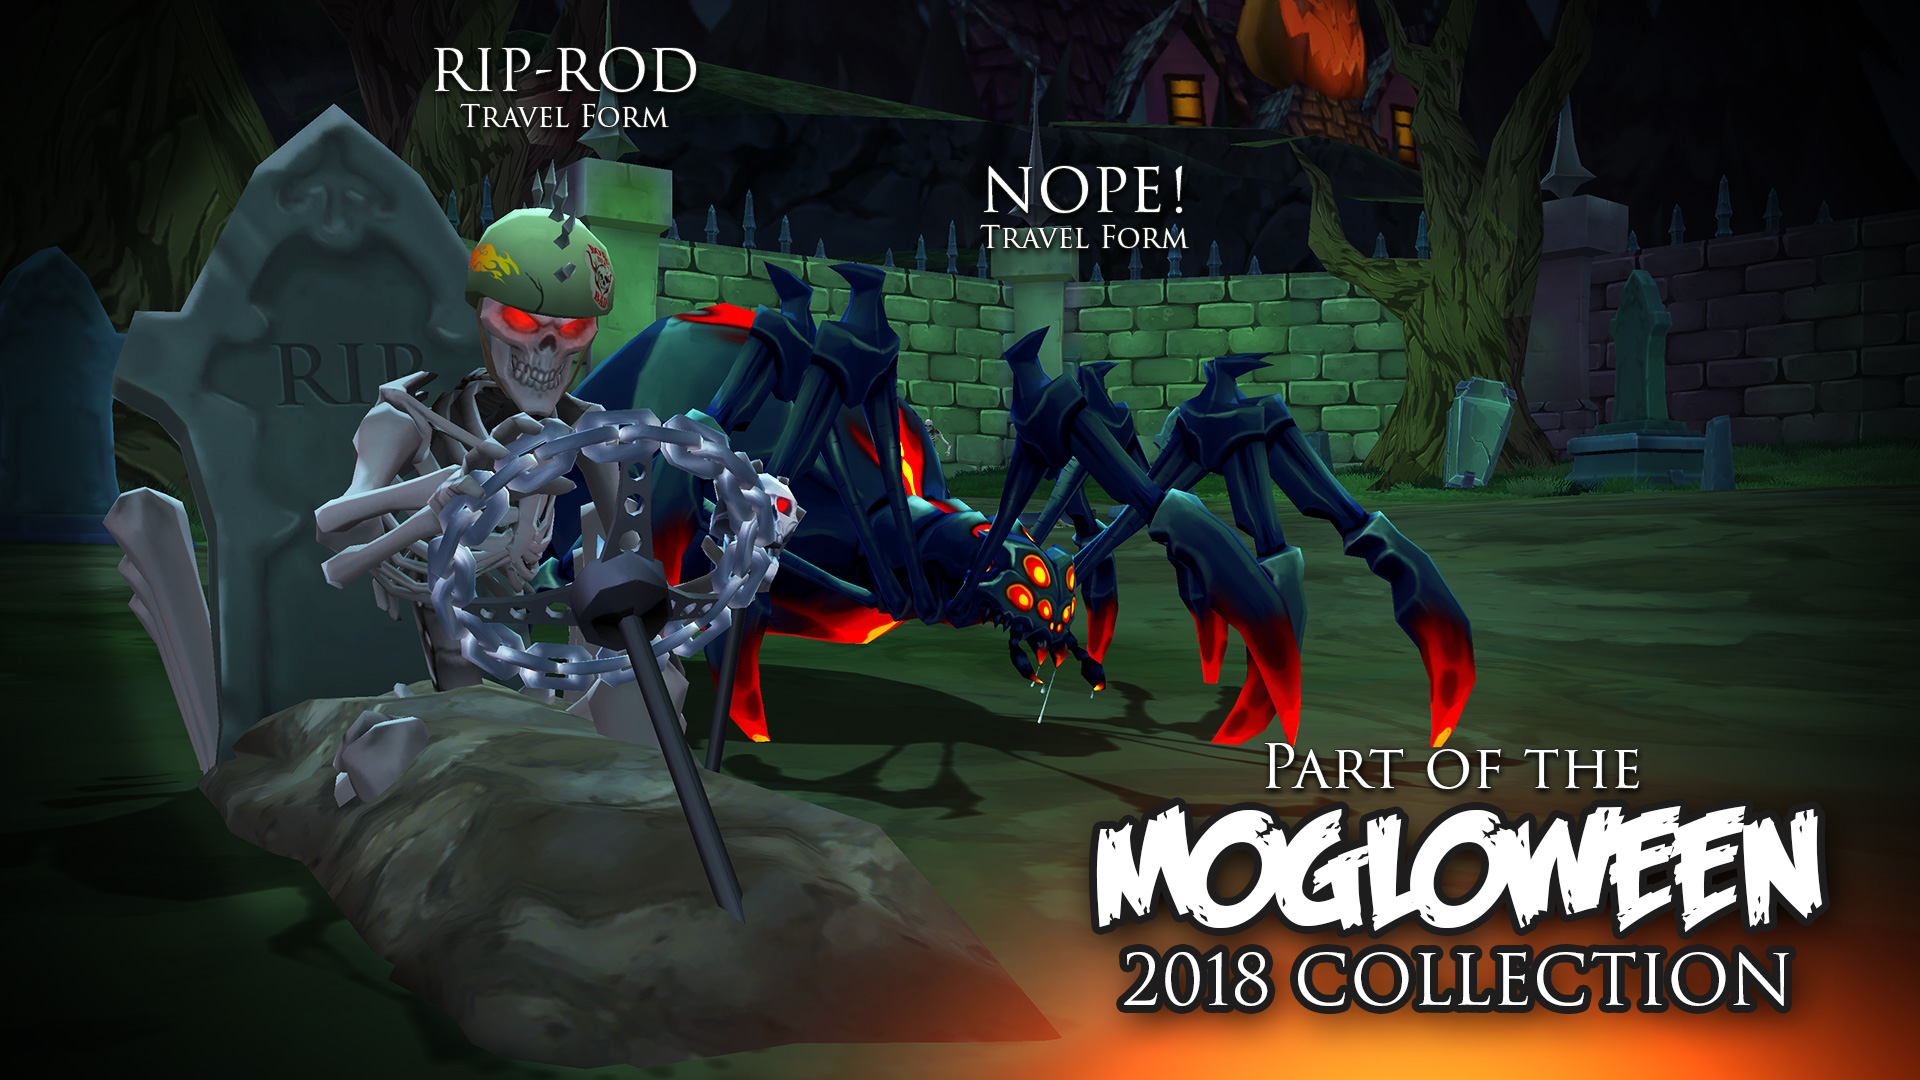 Mogloween collection 2018 travel forms RIP ROD and Spider